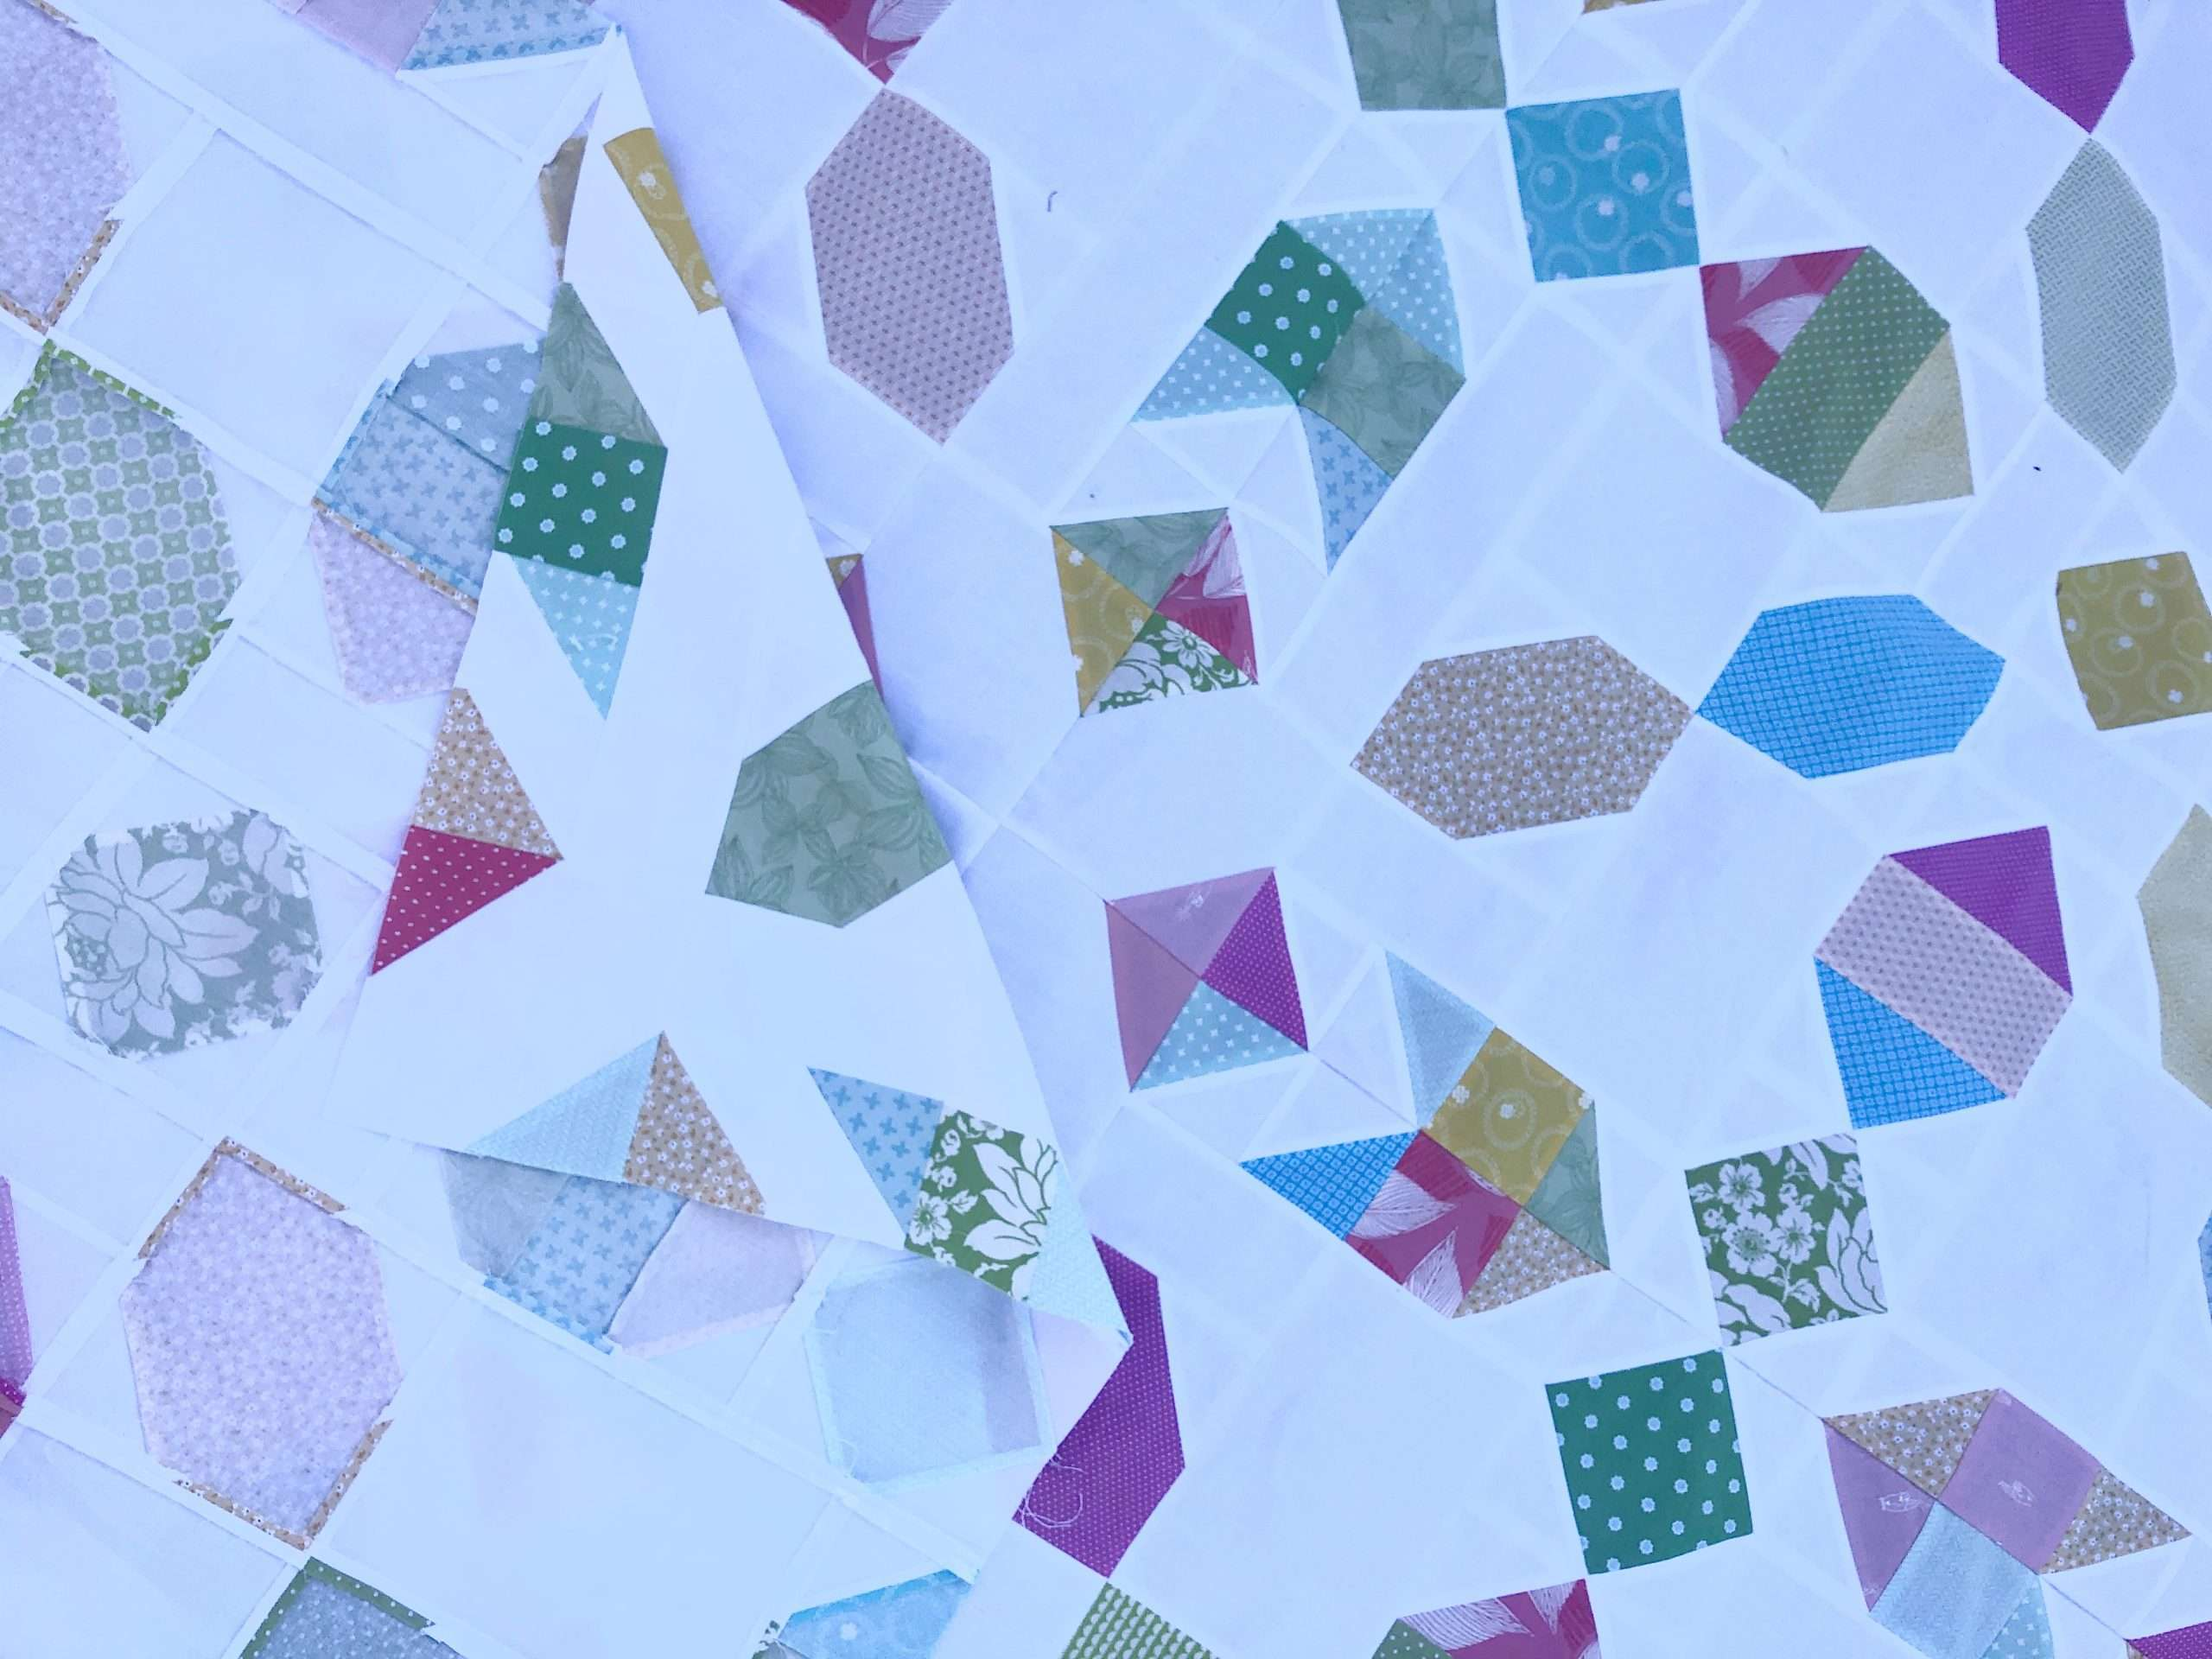 Connector Quilt fabric scraps, scrappy quilt pattern, easy quilt pattern, scrap buster, homemadeemilyjane, connector quilt, fabric scraps, fat quarter quilt pattern, throw size quilt